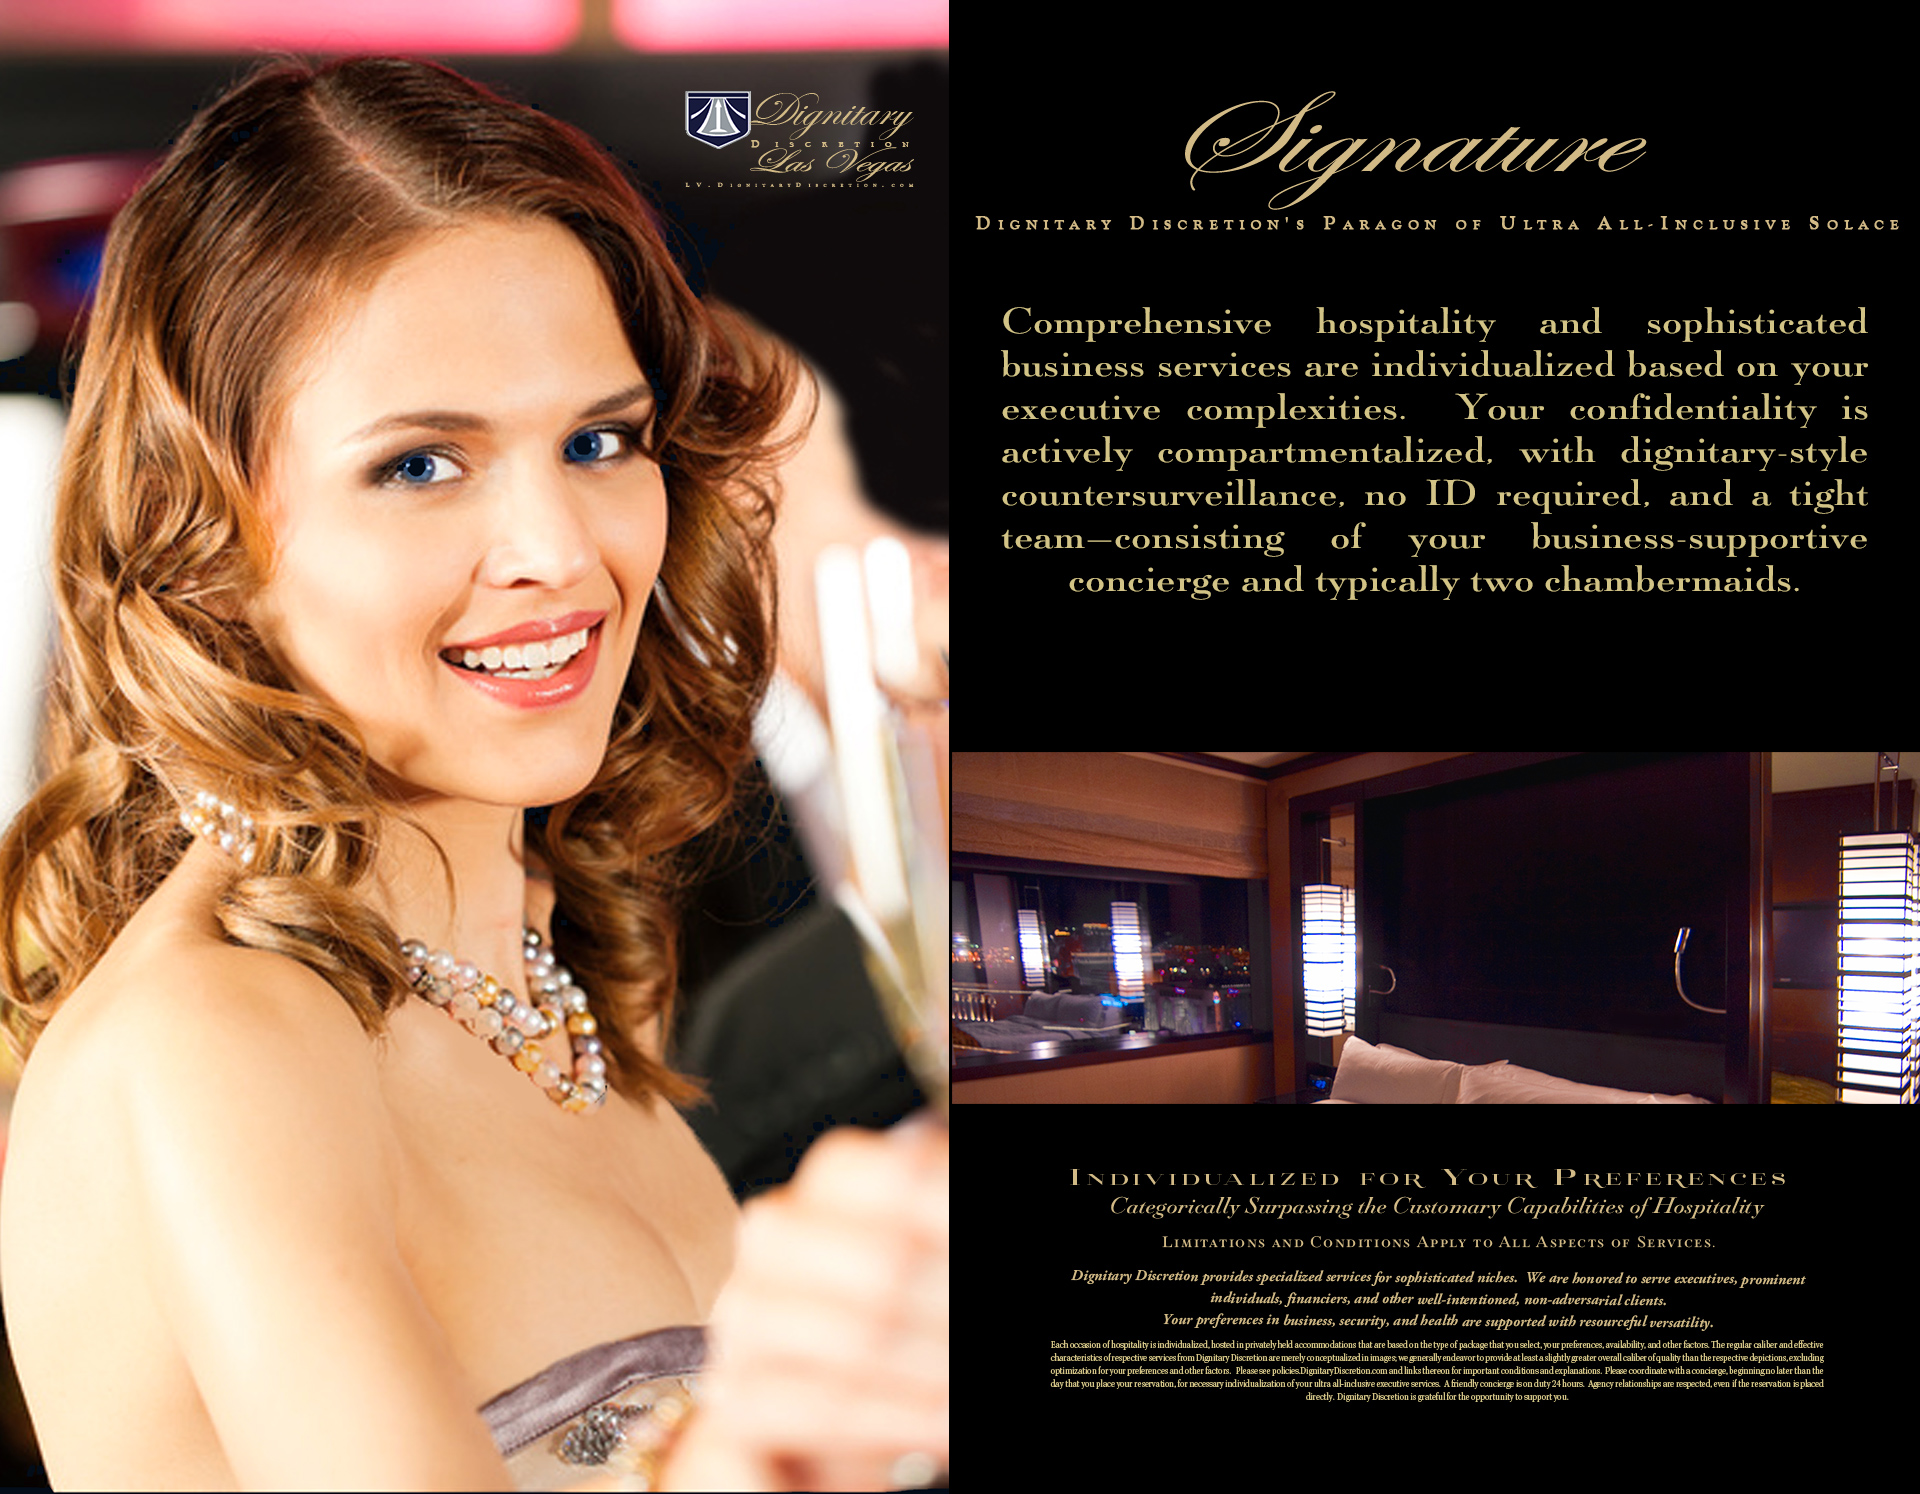 Signature by Dignitary Discretion Las Vegas